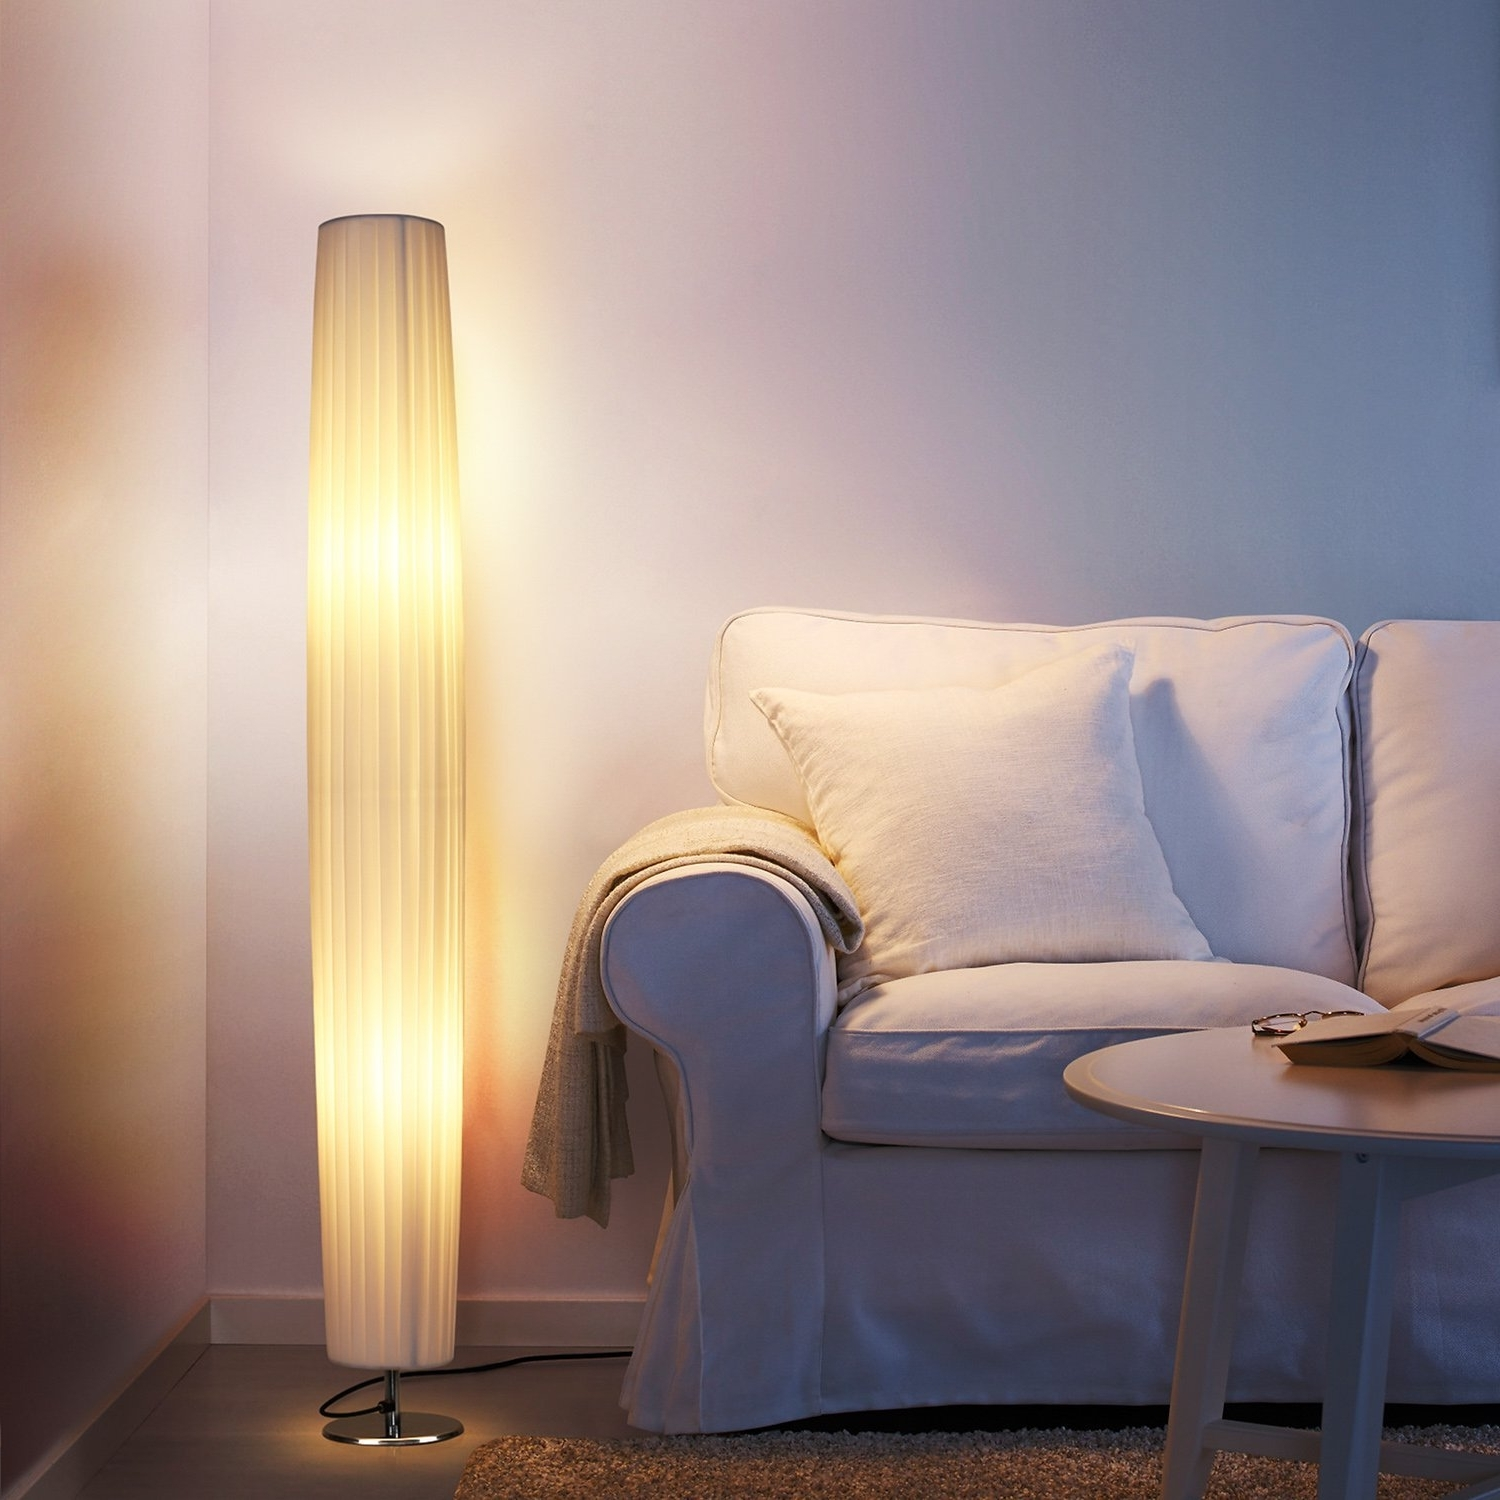 55 Most Unbeatable Table Lamps Amazon Grey Bedside Battery Powered intended for Most Up-to-Date Ceramic Living Room Table Lamps